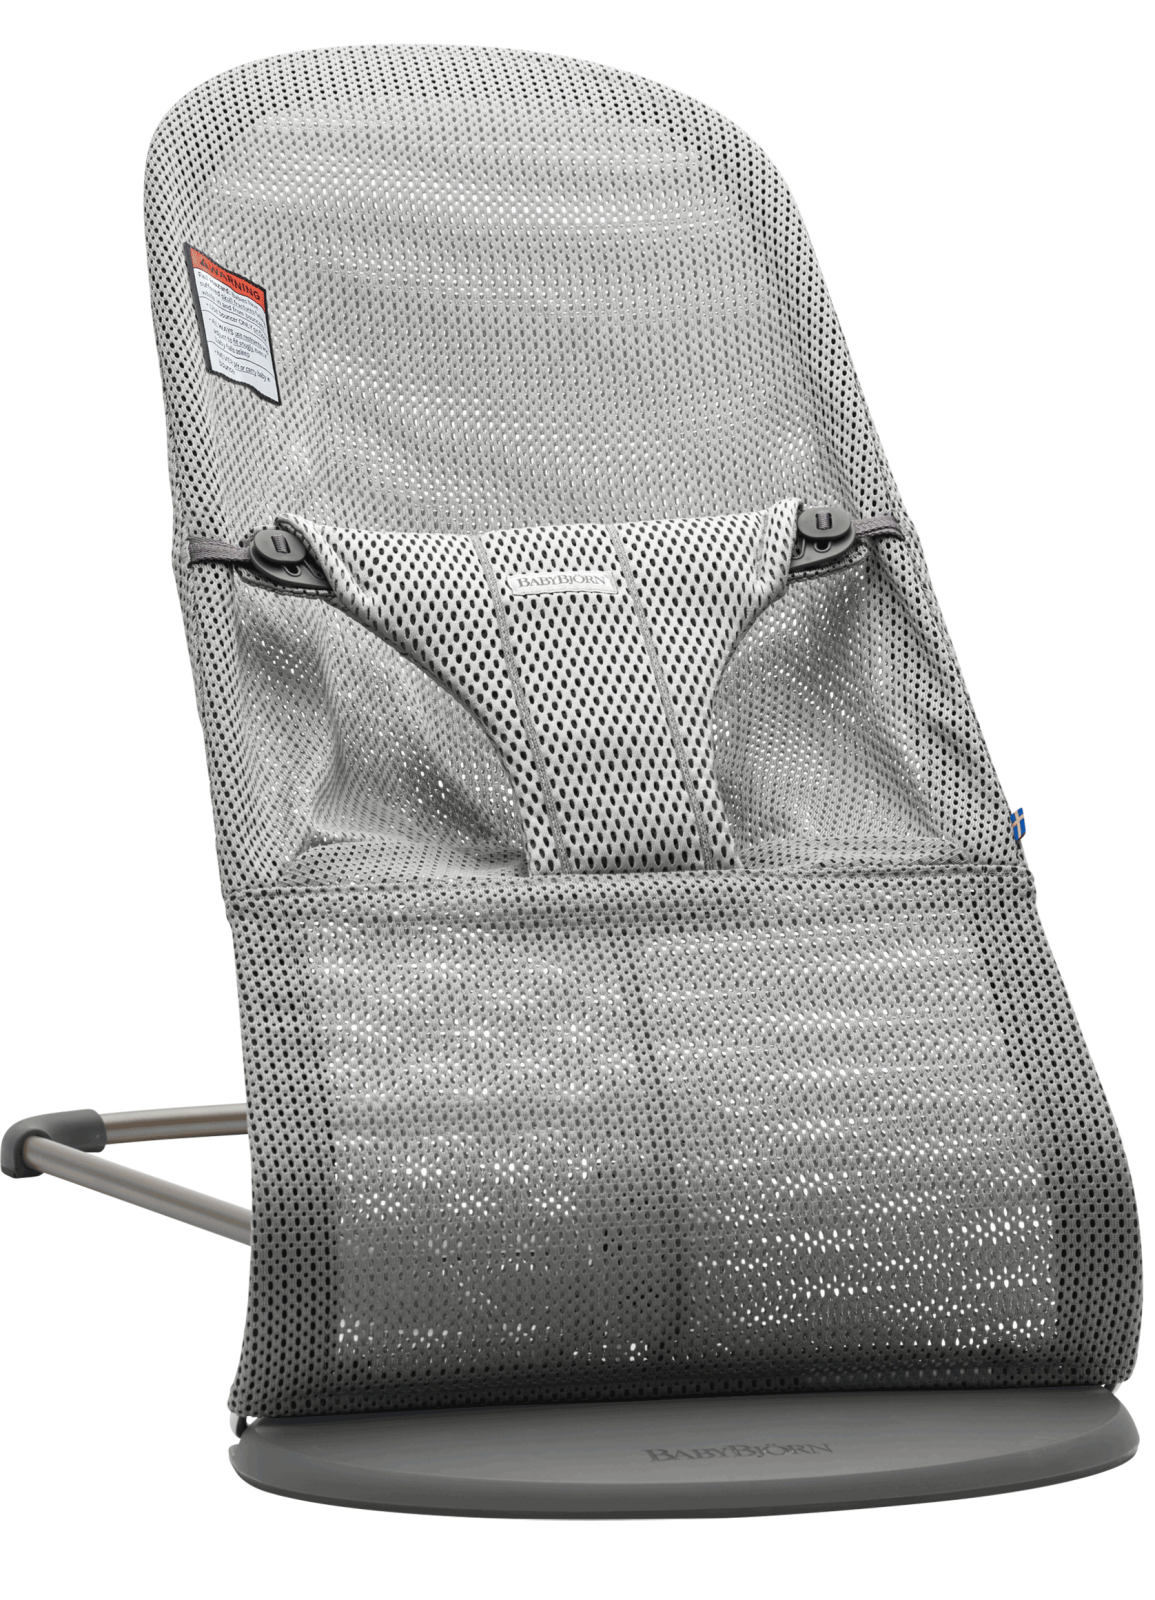 BABYBJORN  Bouncer Bliss, Mesh - Grey